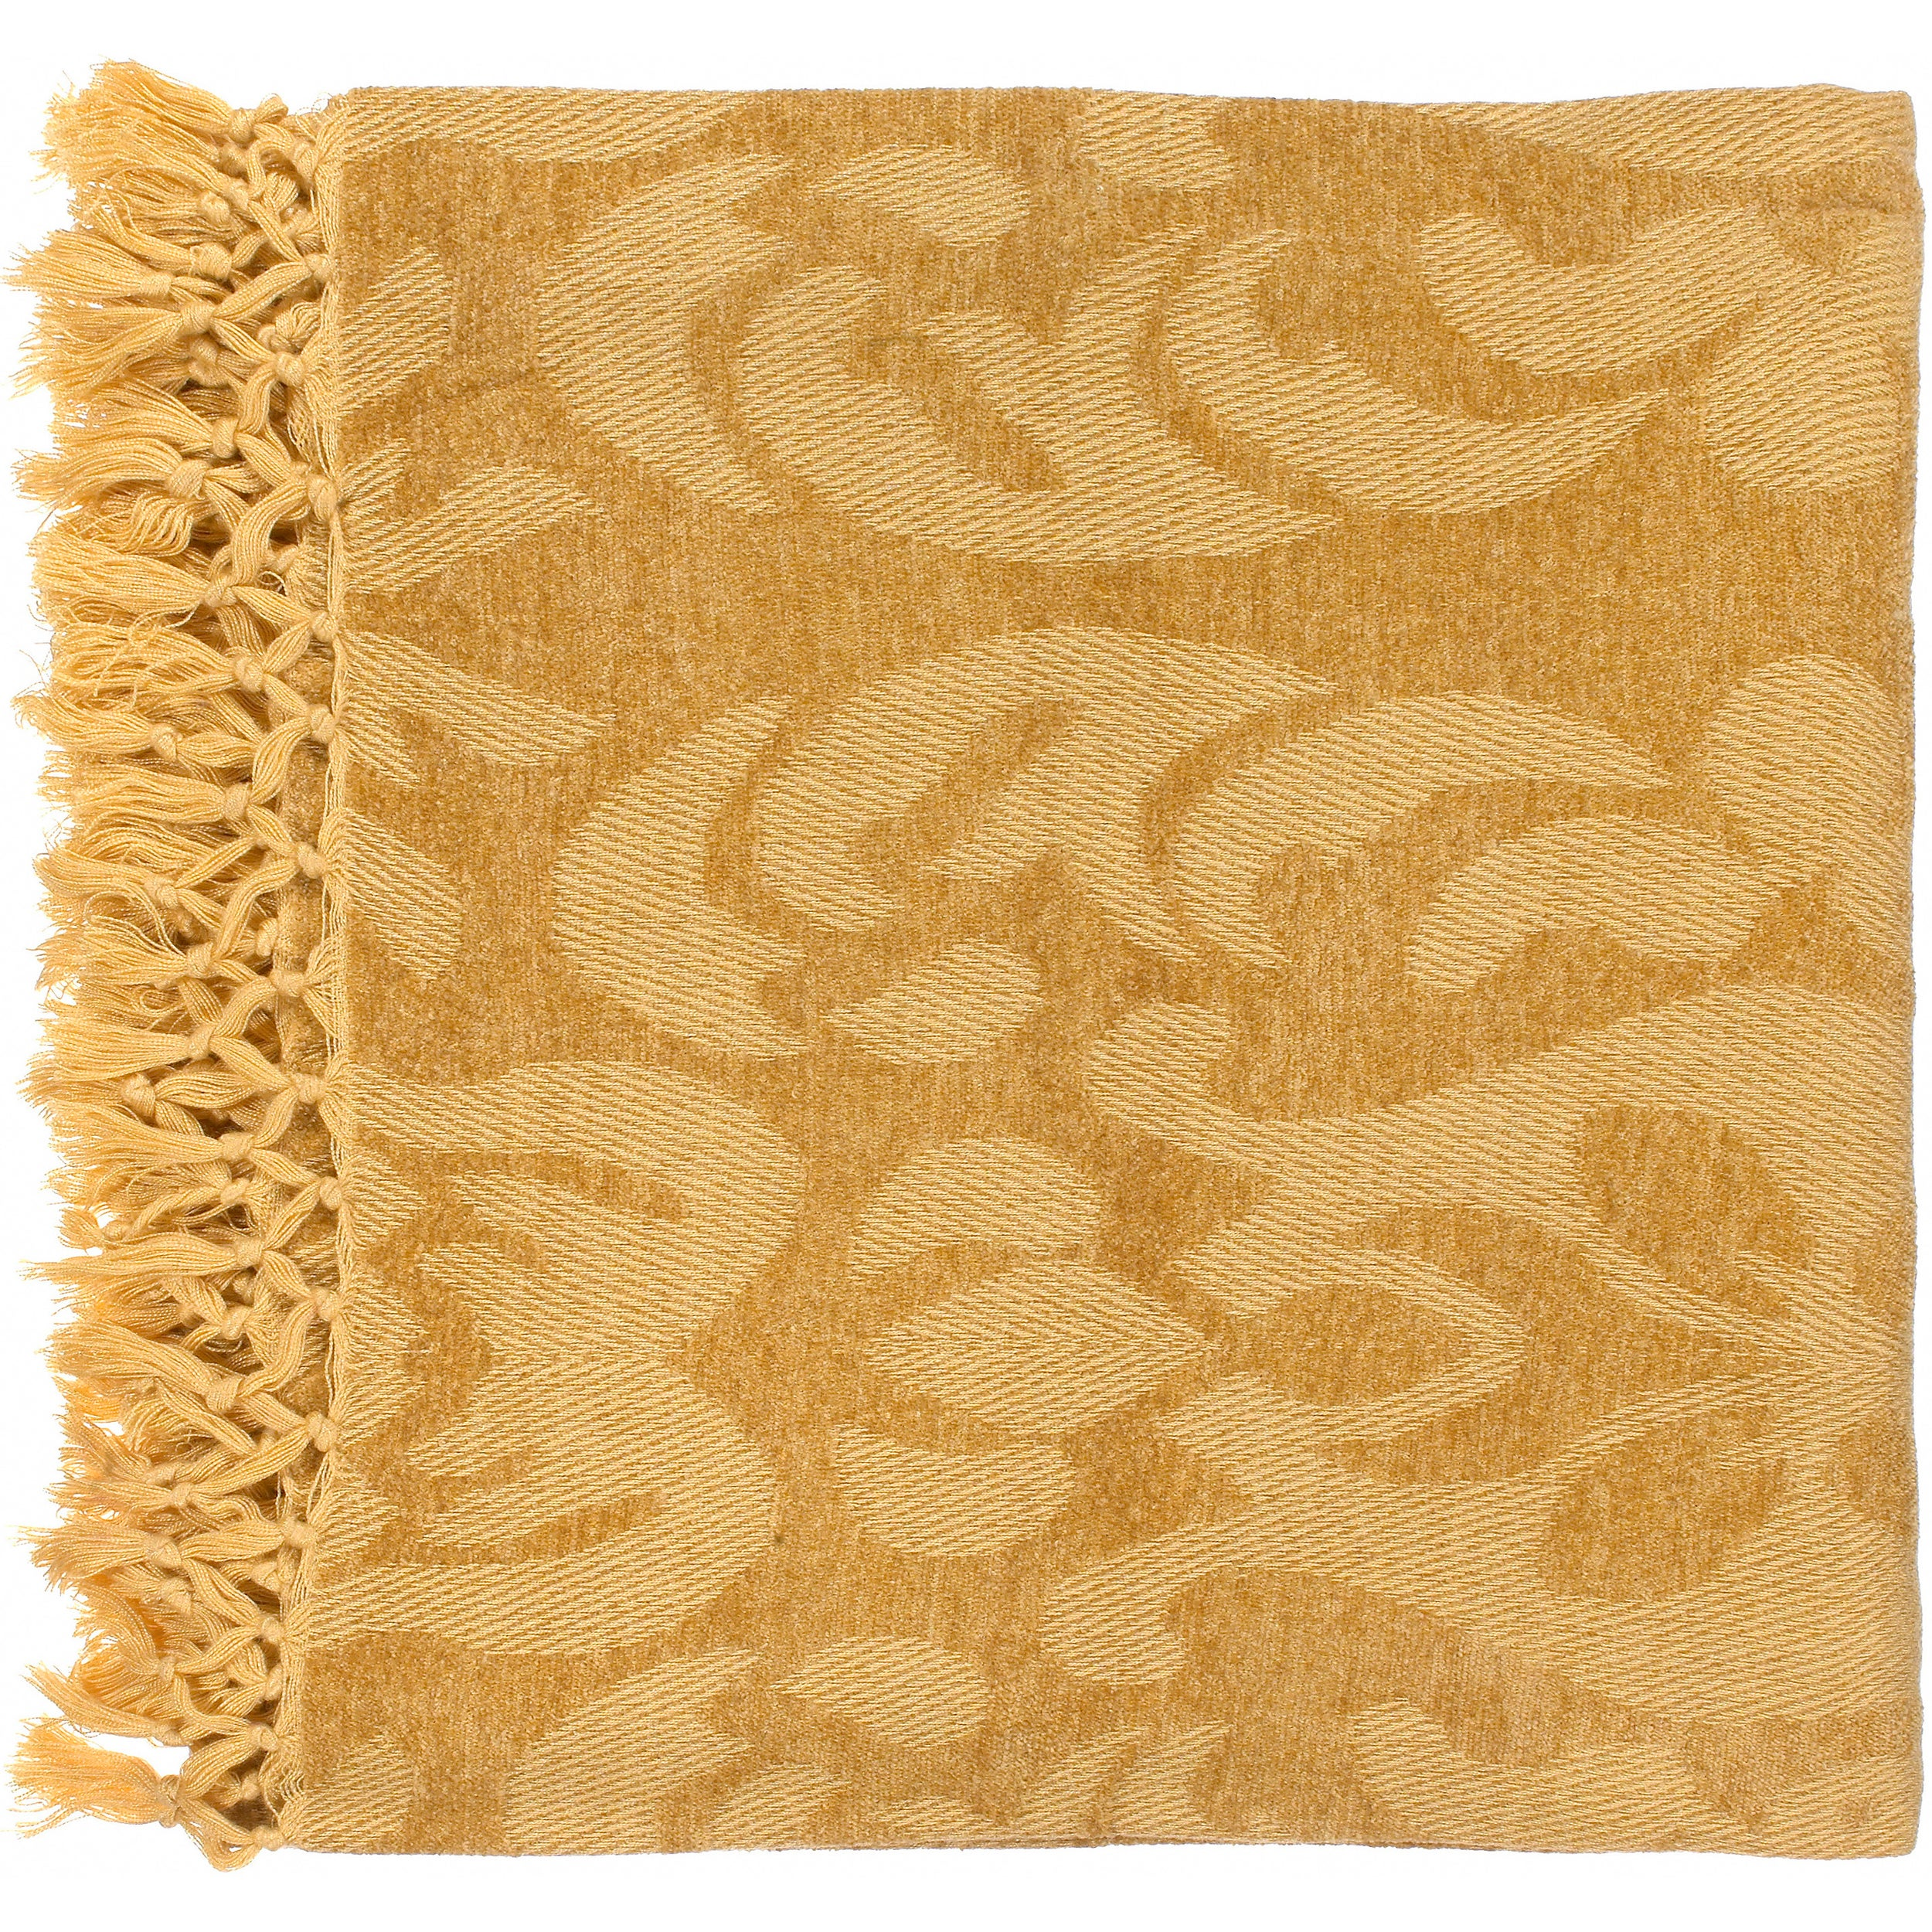 Woven Case Viscose Throw Blanket (50 x 70)